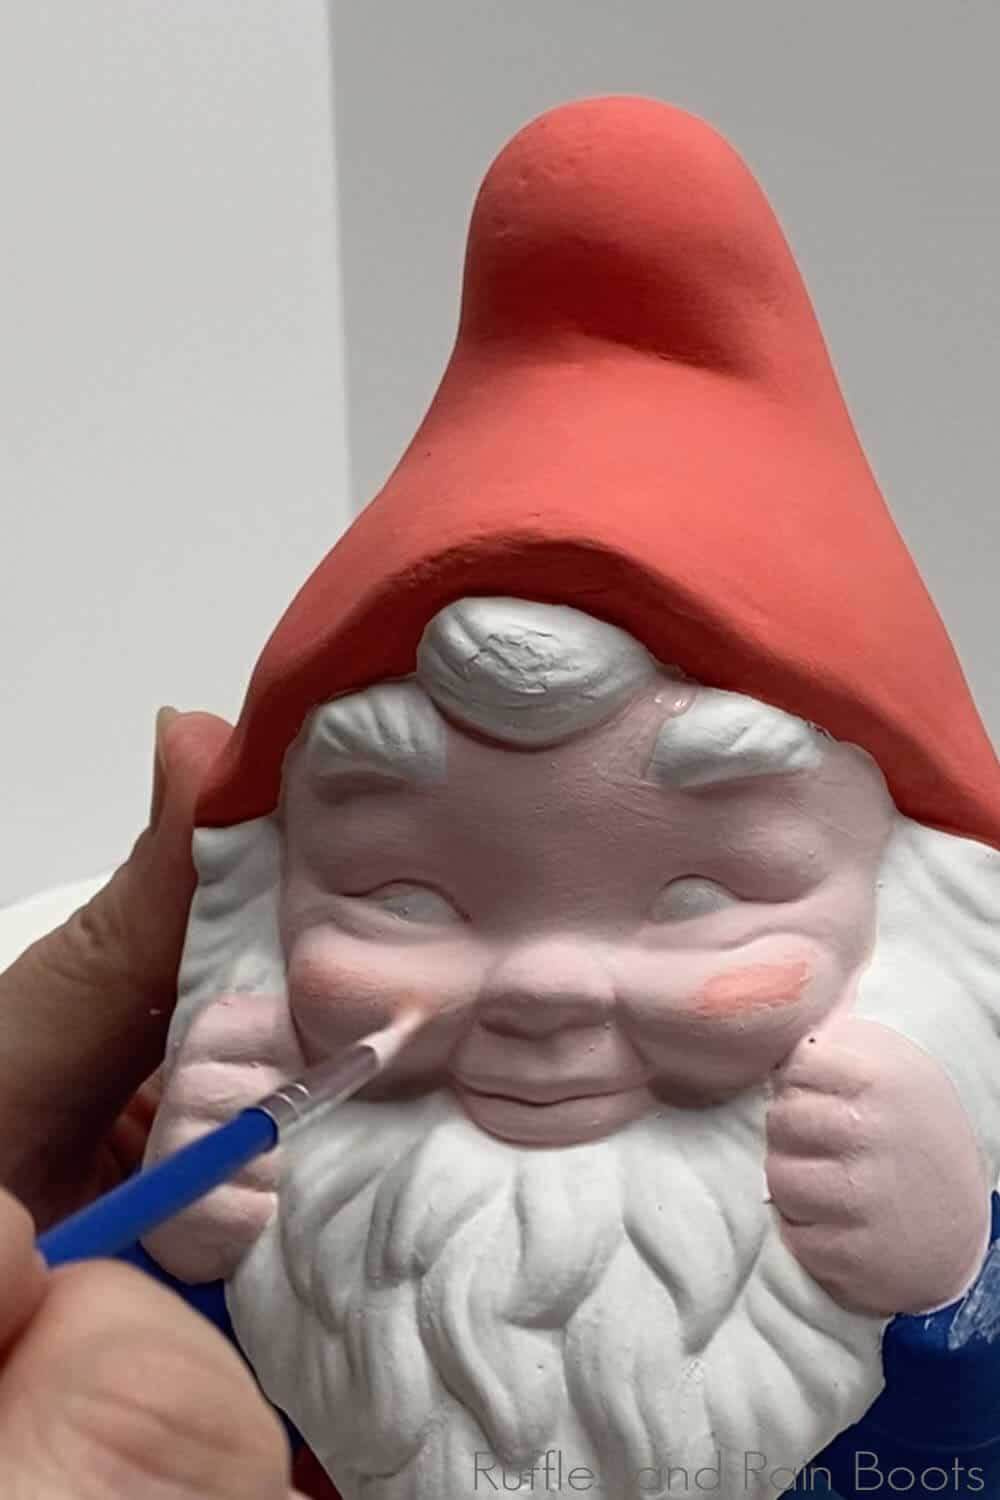 in-process step of painting cheeks on to illustrate steps to restore a garden gnome